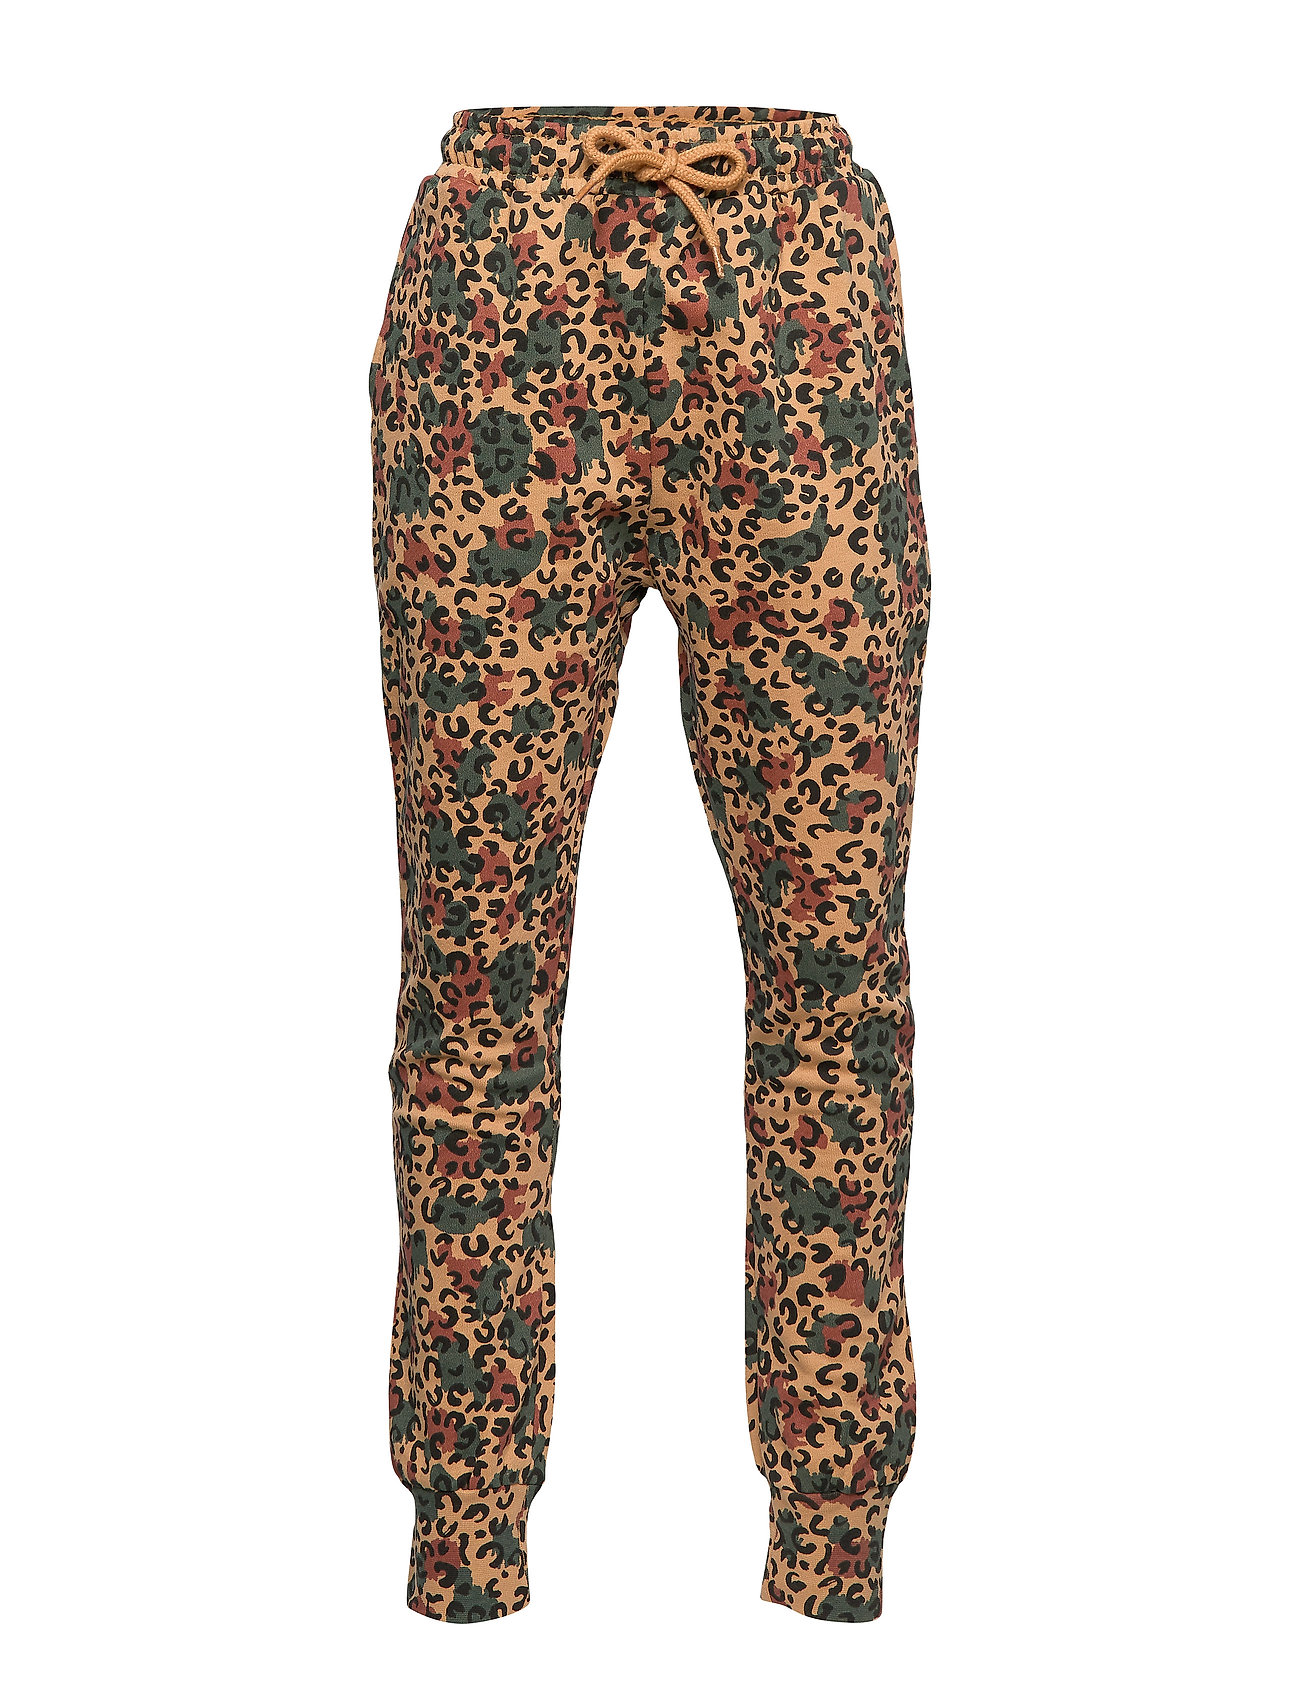 Soft Gallery Jules Pants - DOE, AOP CAMOLEO